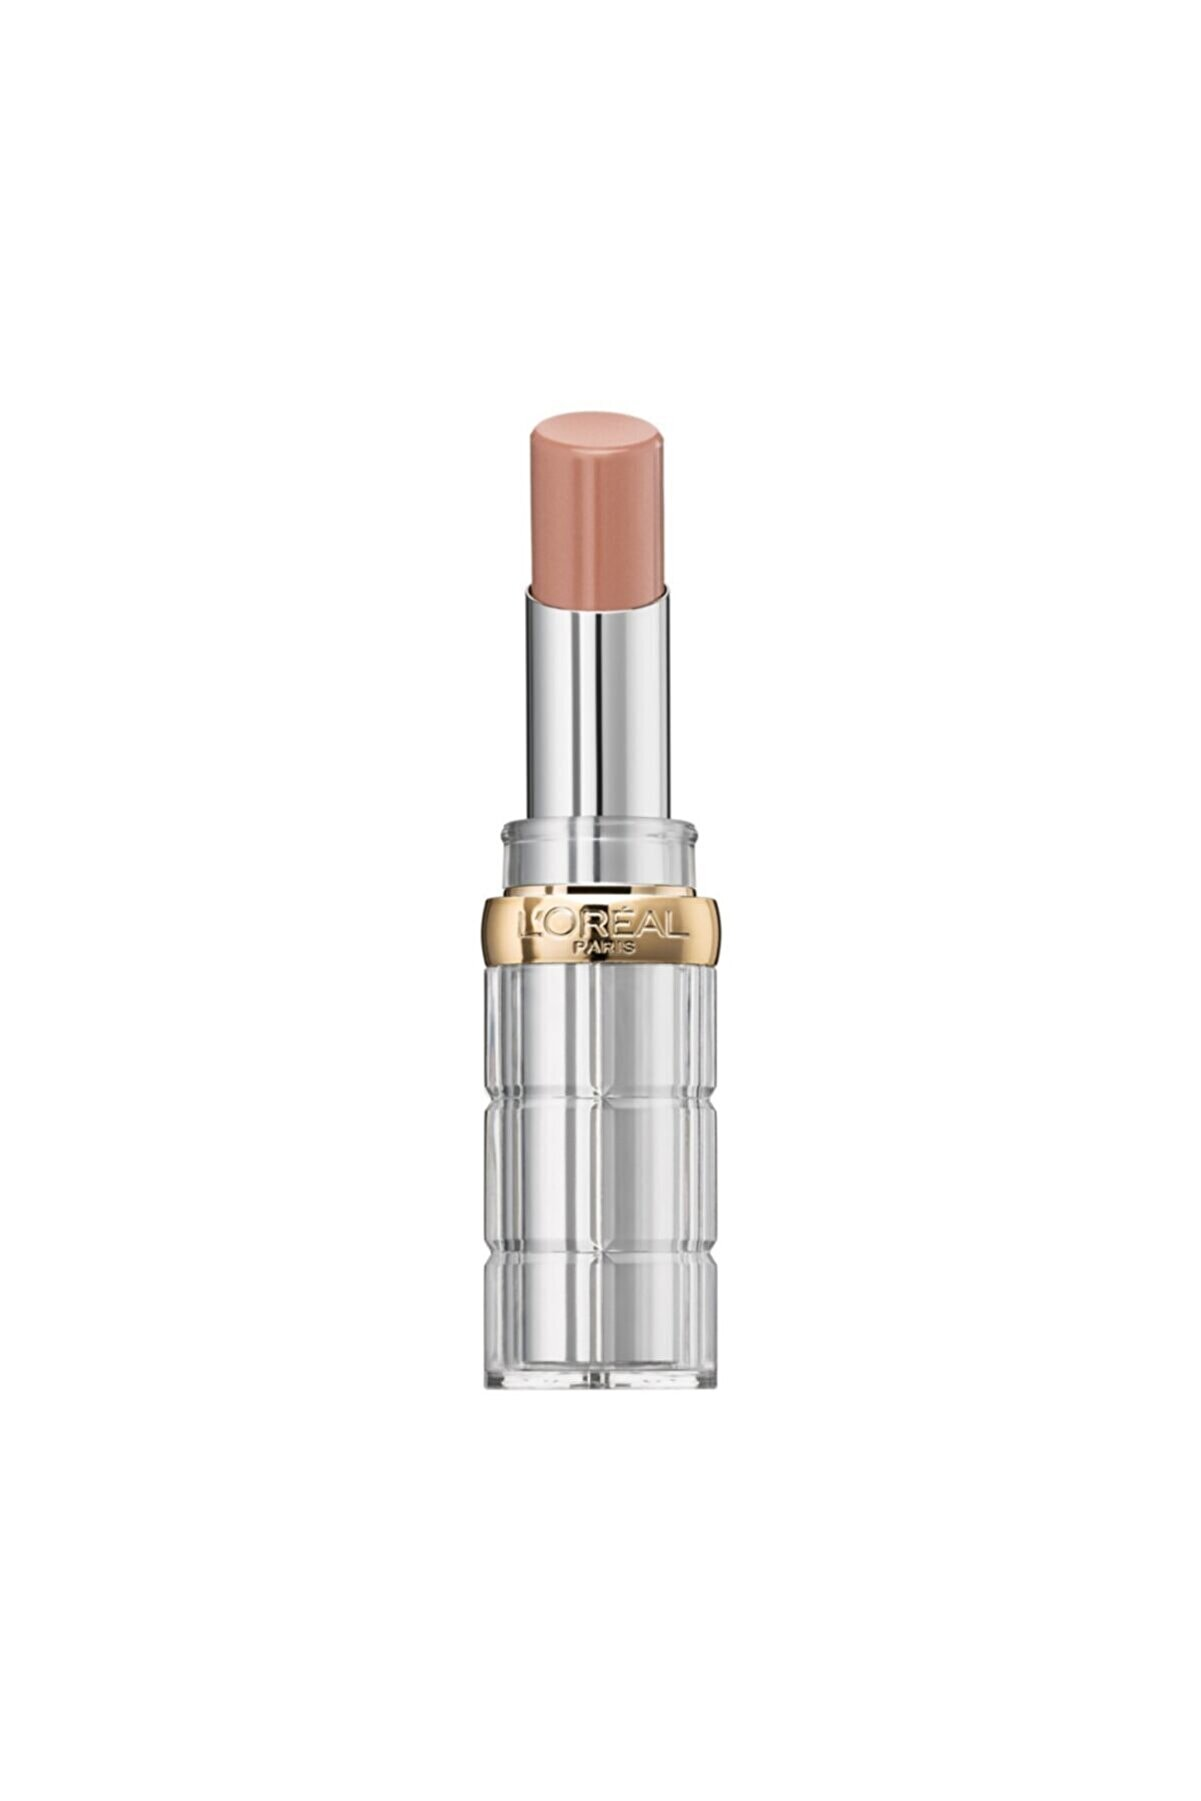 L'Oreal Paris Color Riche Shine Naked Tans Ruj 658 Topless - Nude